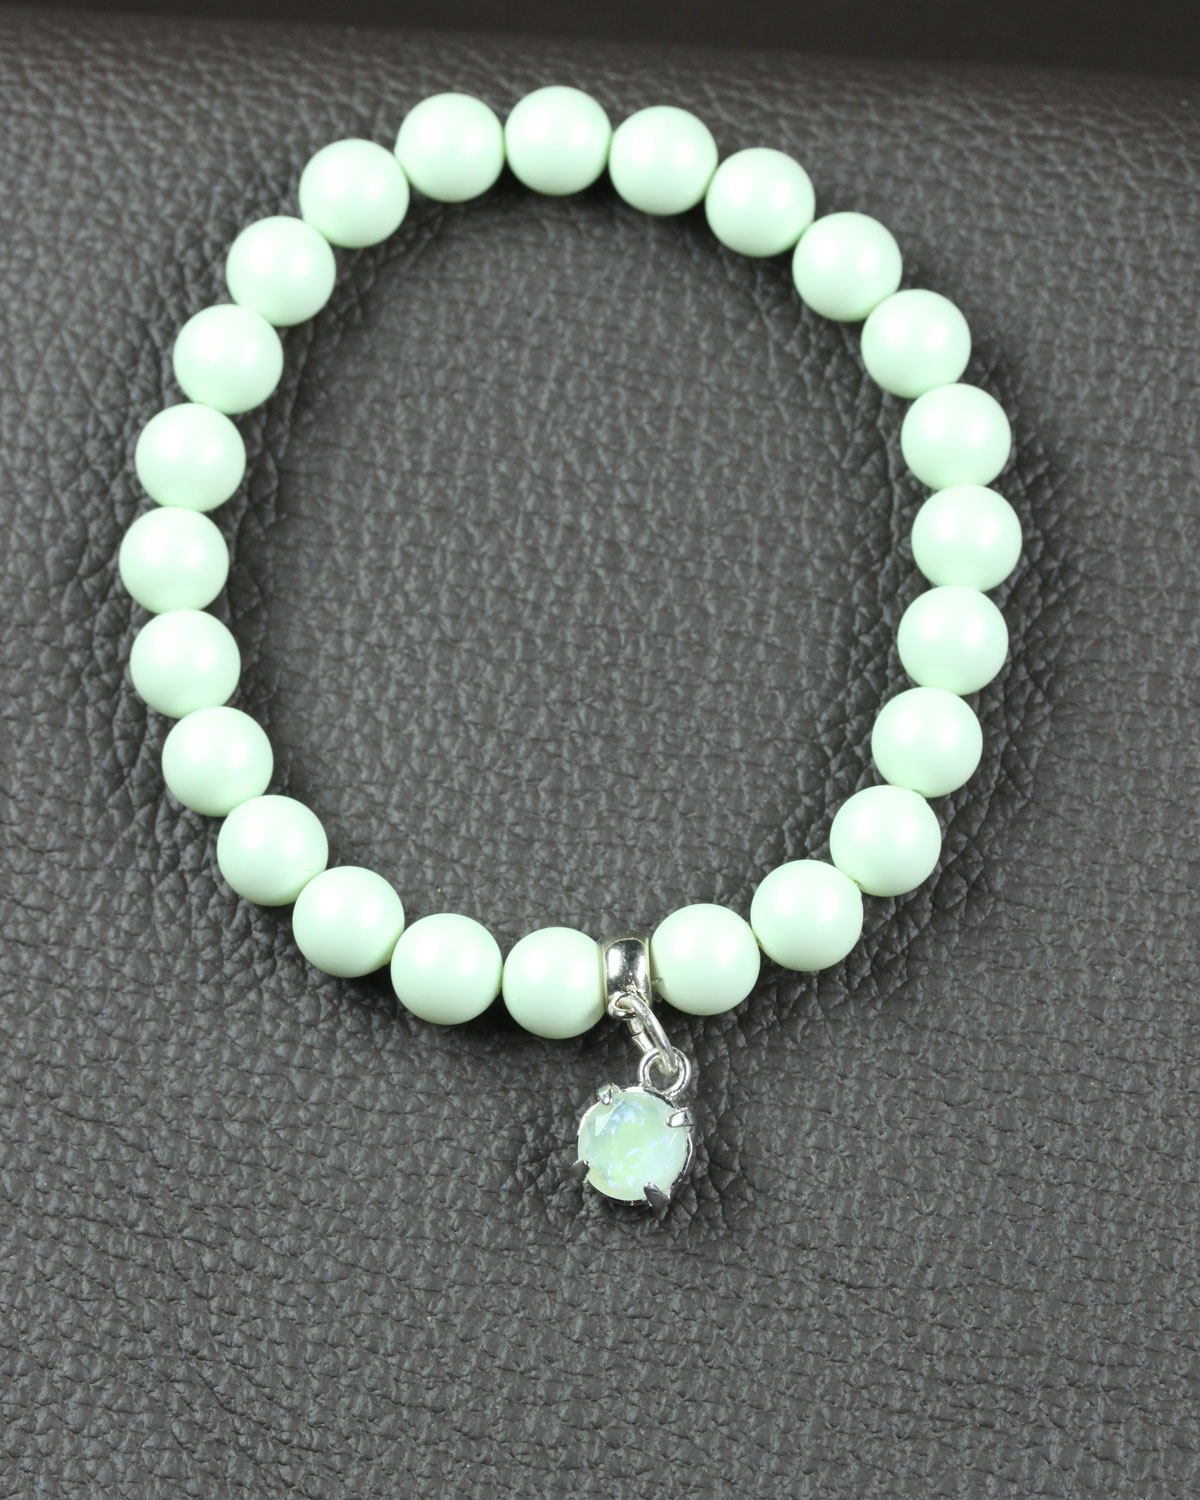 Pastel Pastel green swarovski bracelet with glass charm